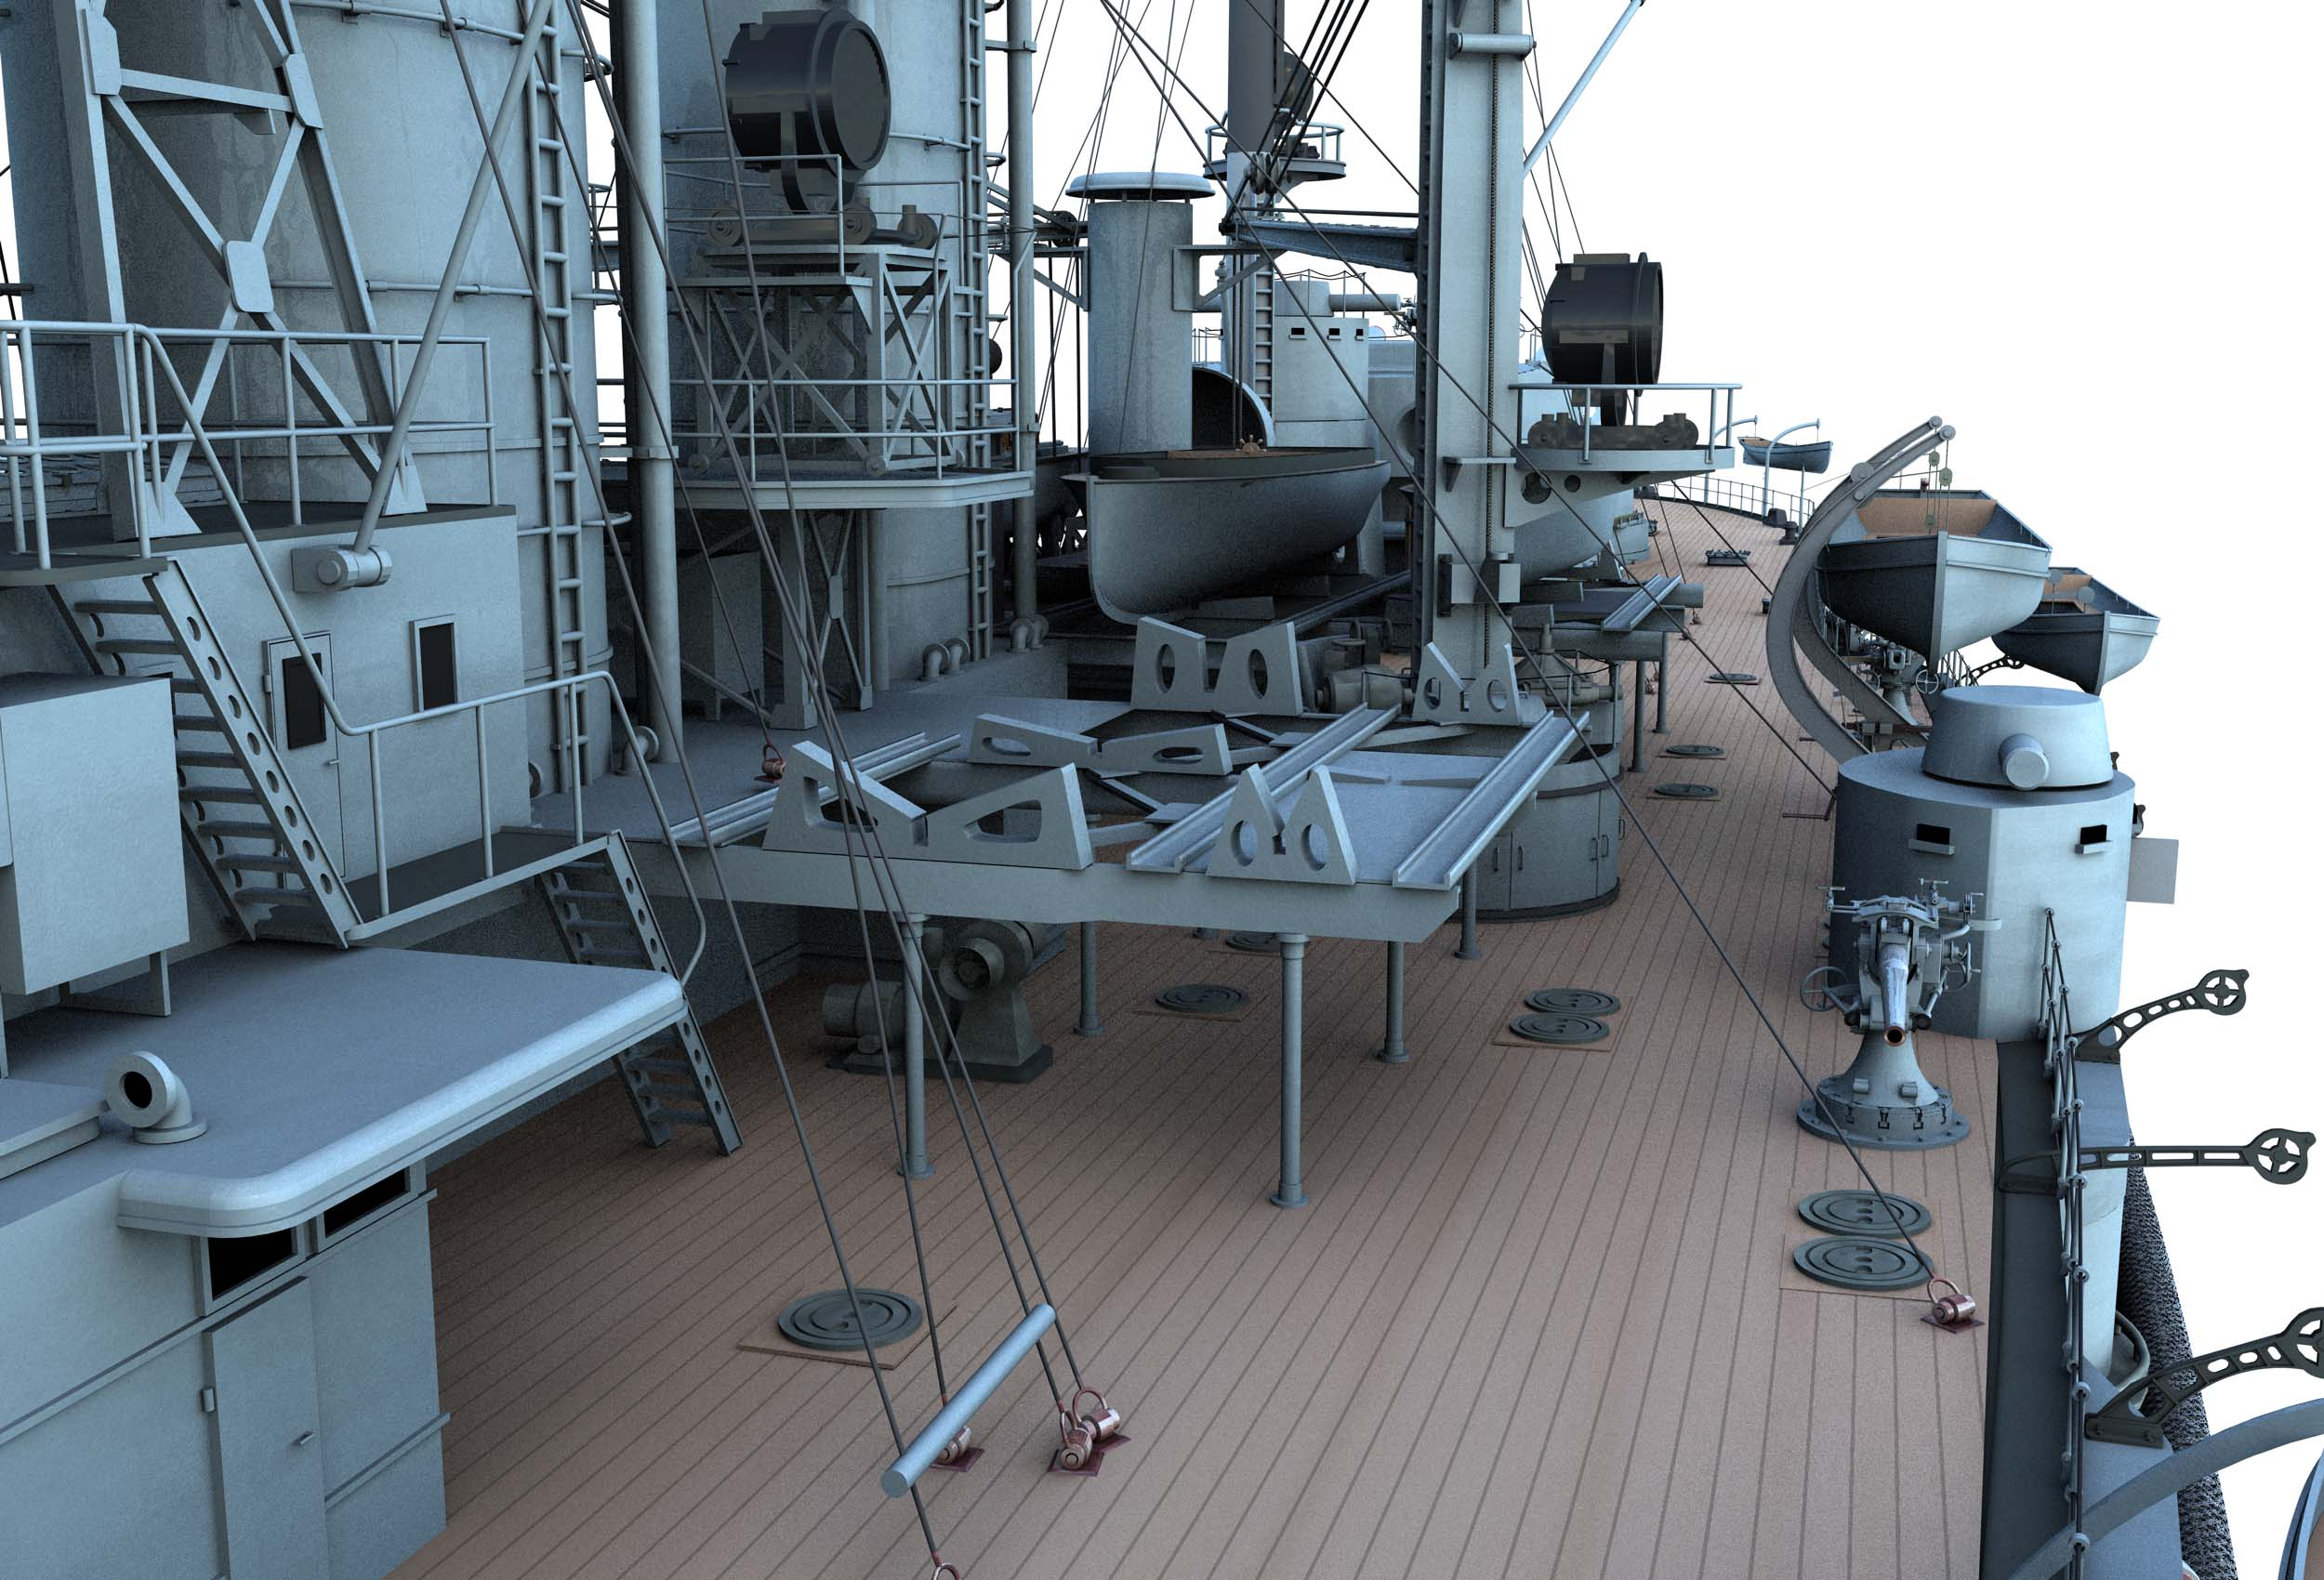 https://0901.nccdn.net/4_2/000/000/046/6ea/CK112-Partial-Ship-Port-Side-Deck-Level---Back.jpg